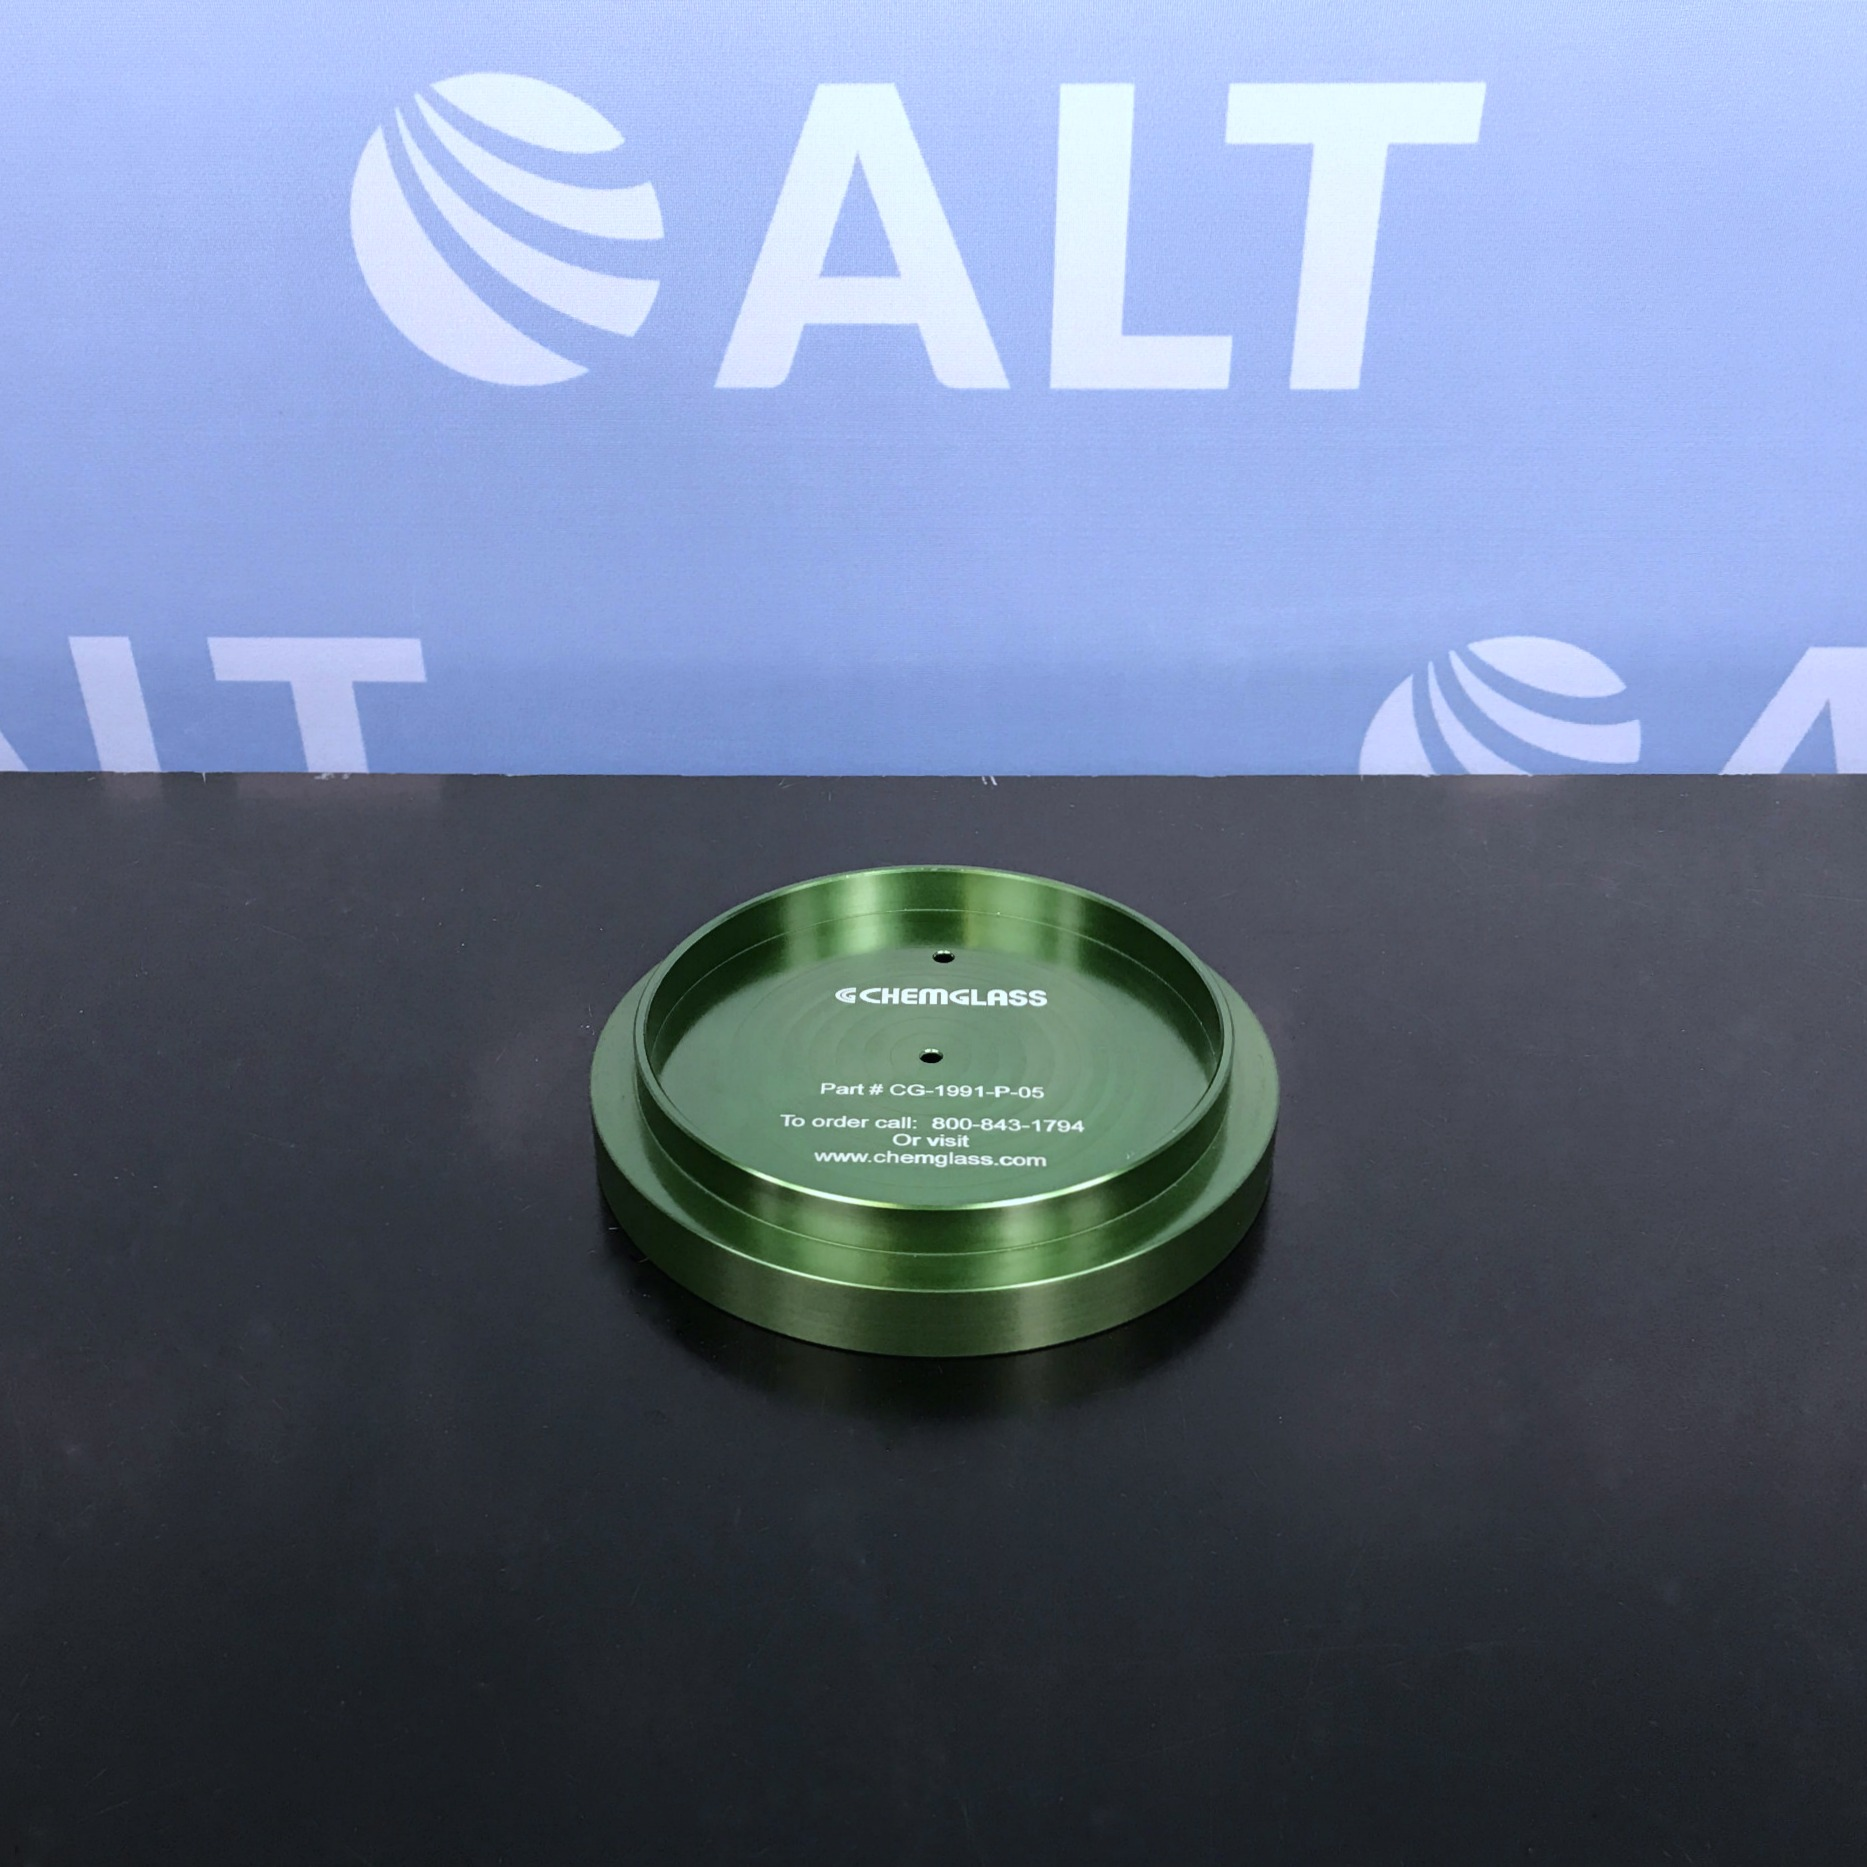 Chemglass PIE-BLOCK Safety Holder Only, Anodized Green P/N CG-1991-P-05 Image